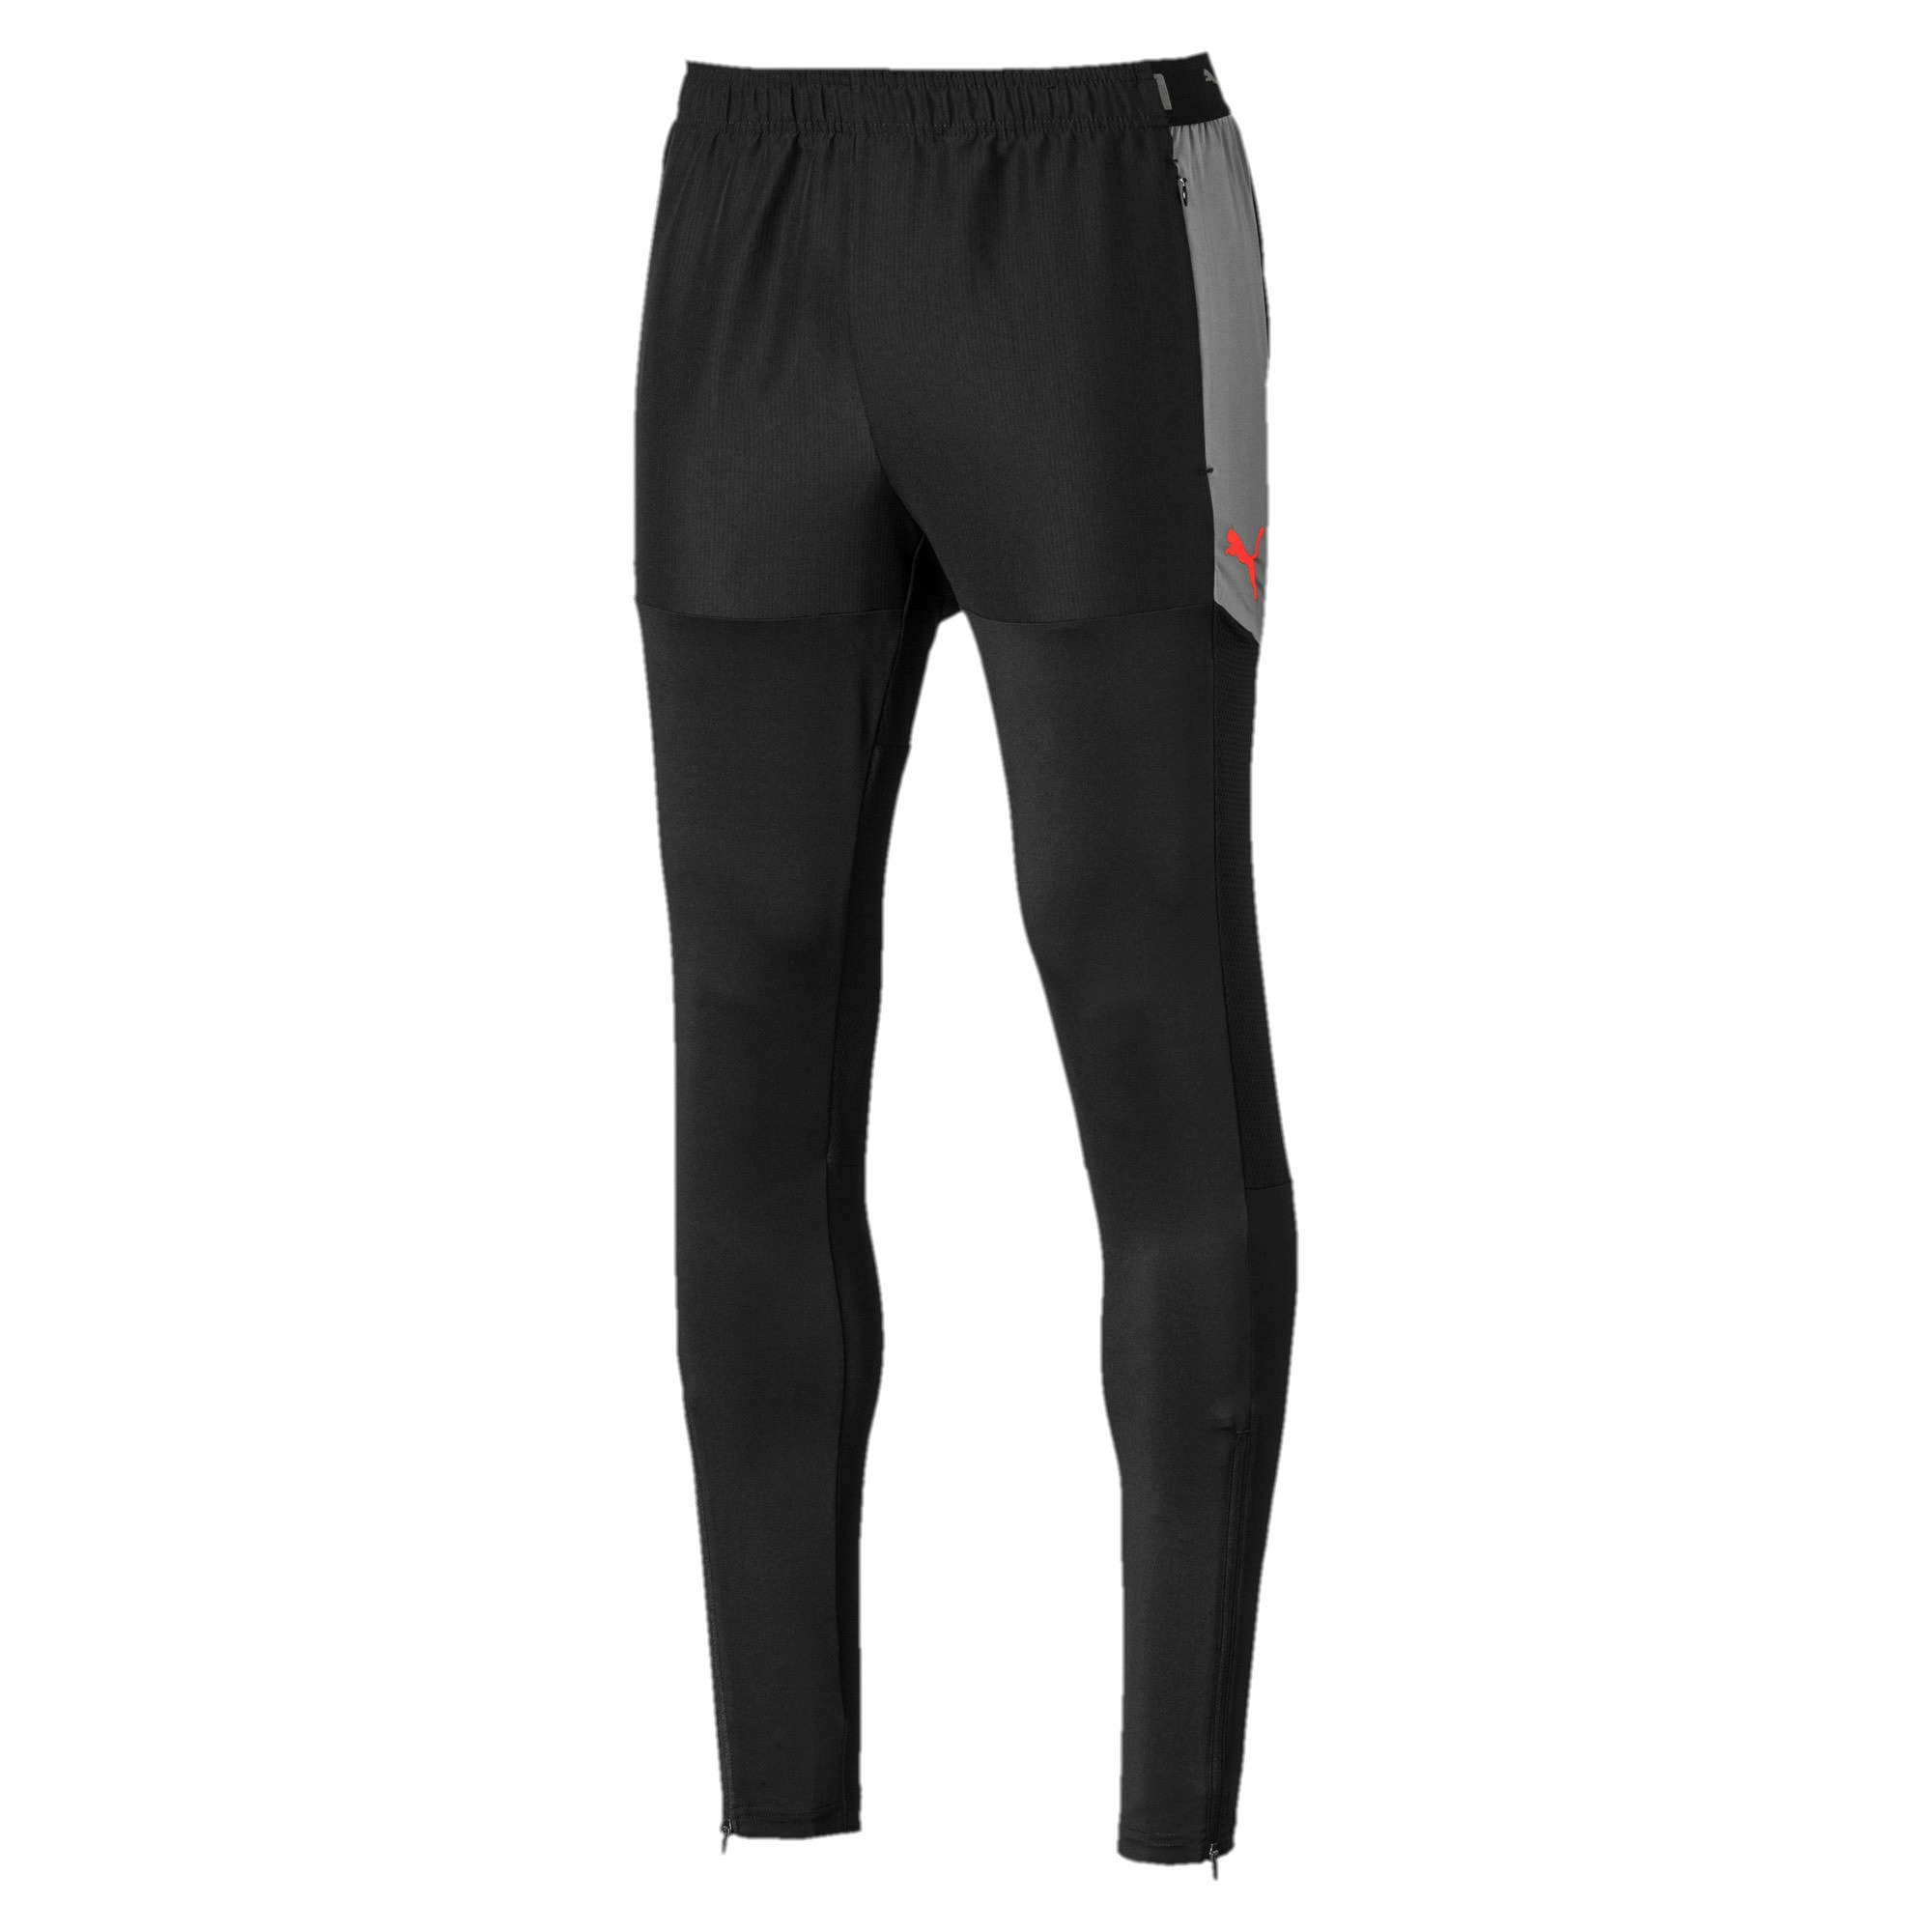 Thumbnail 4 of Pro Herren Gestrickte Trainingshose, Puma Black-Nrgy Red, medium